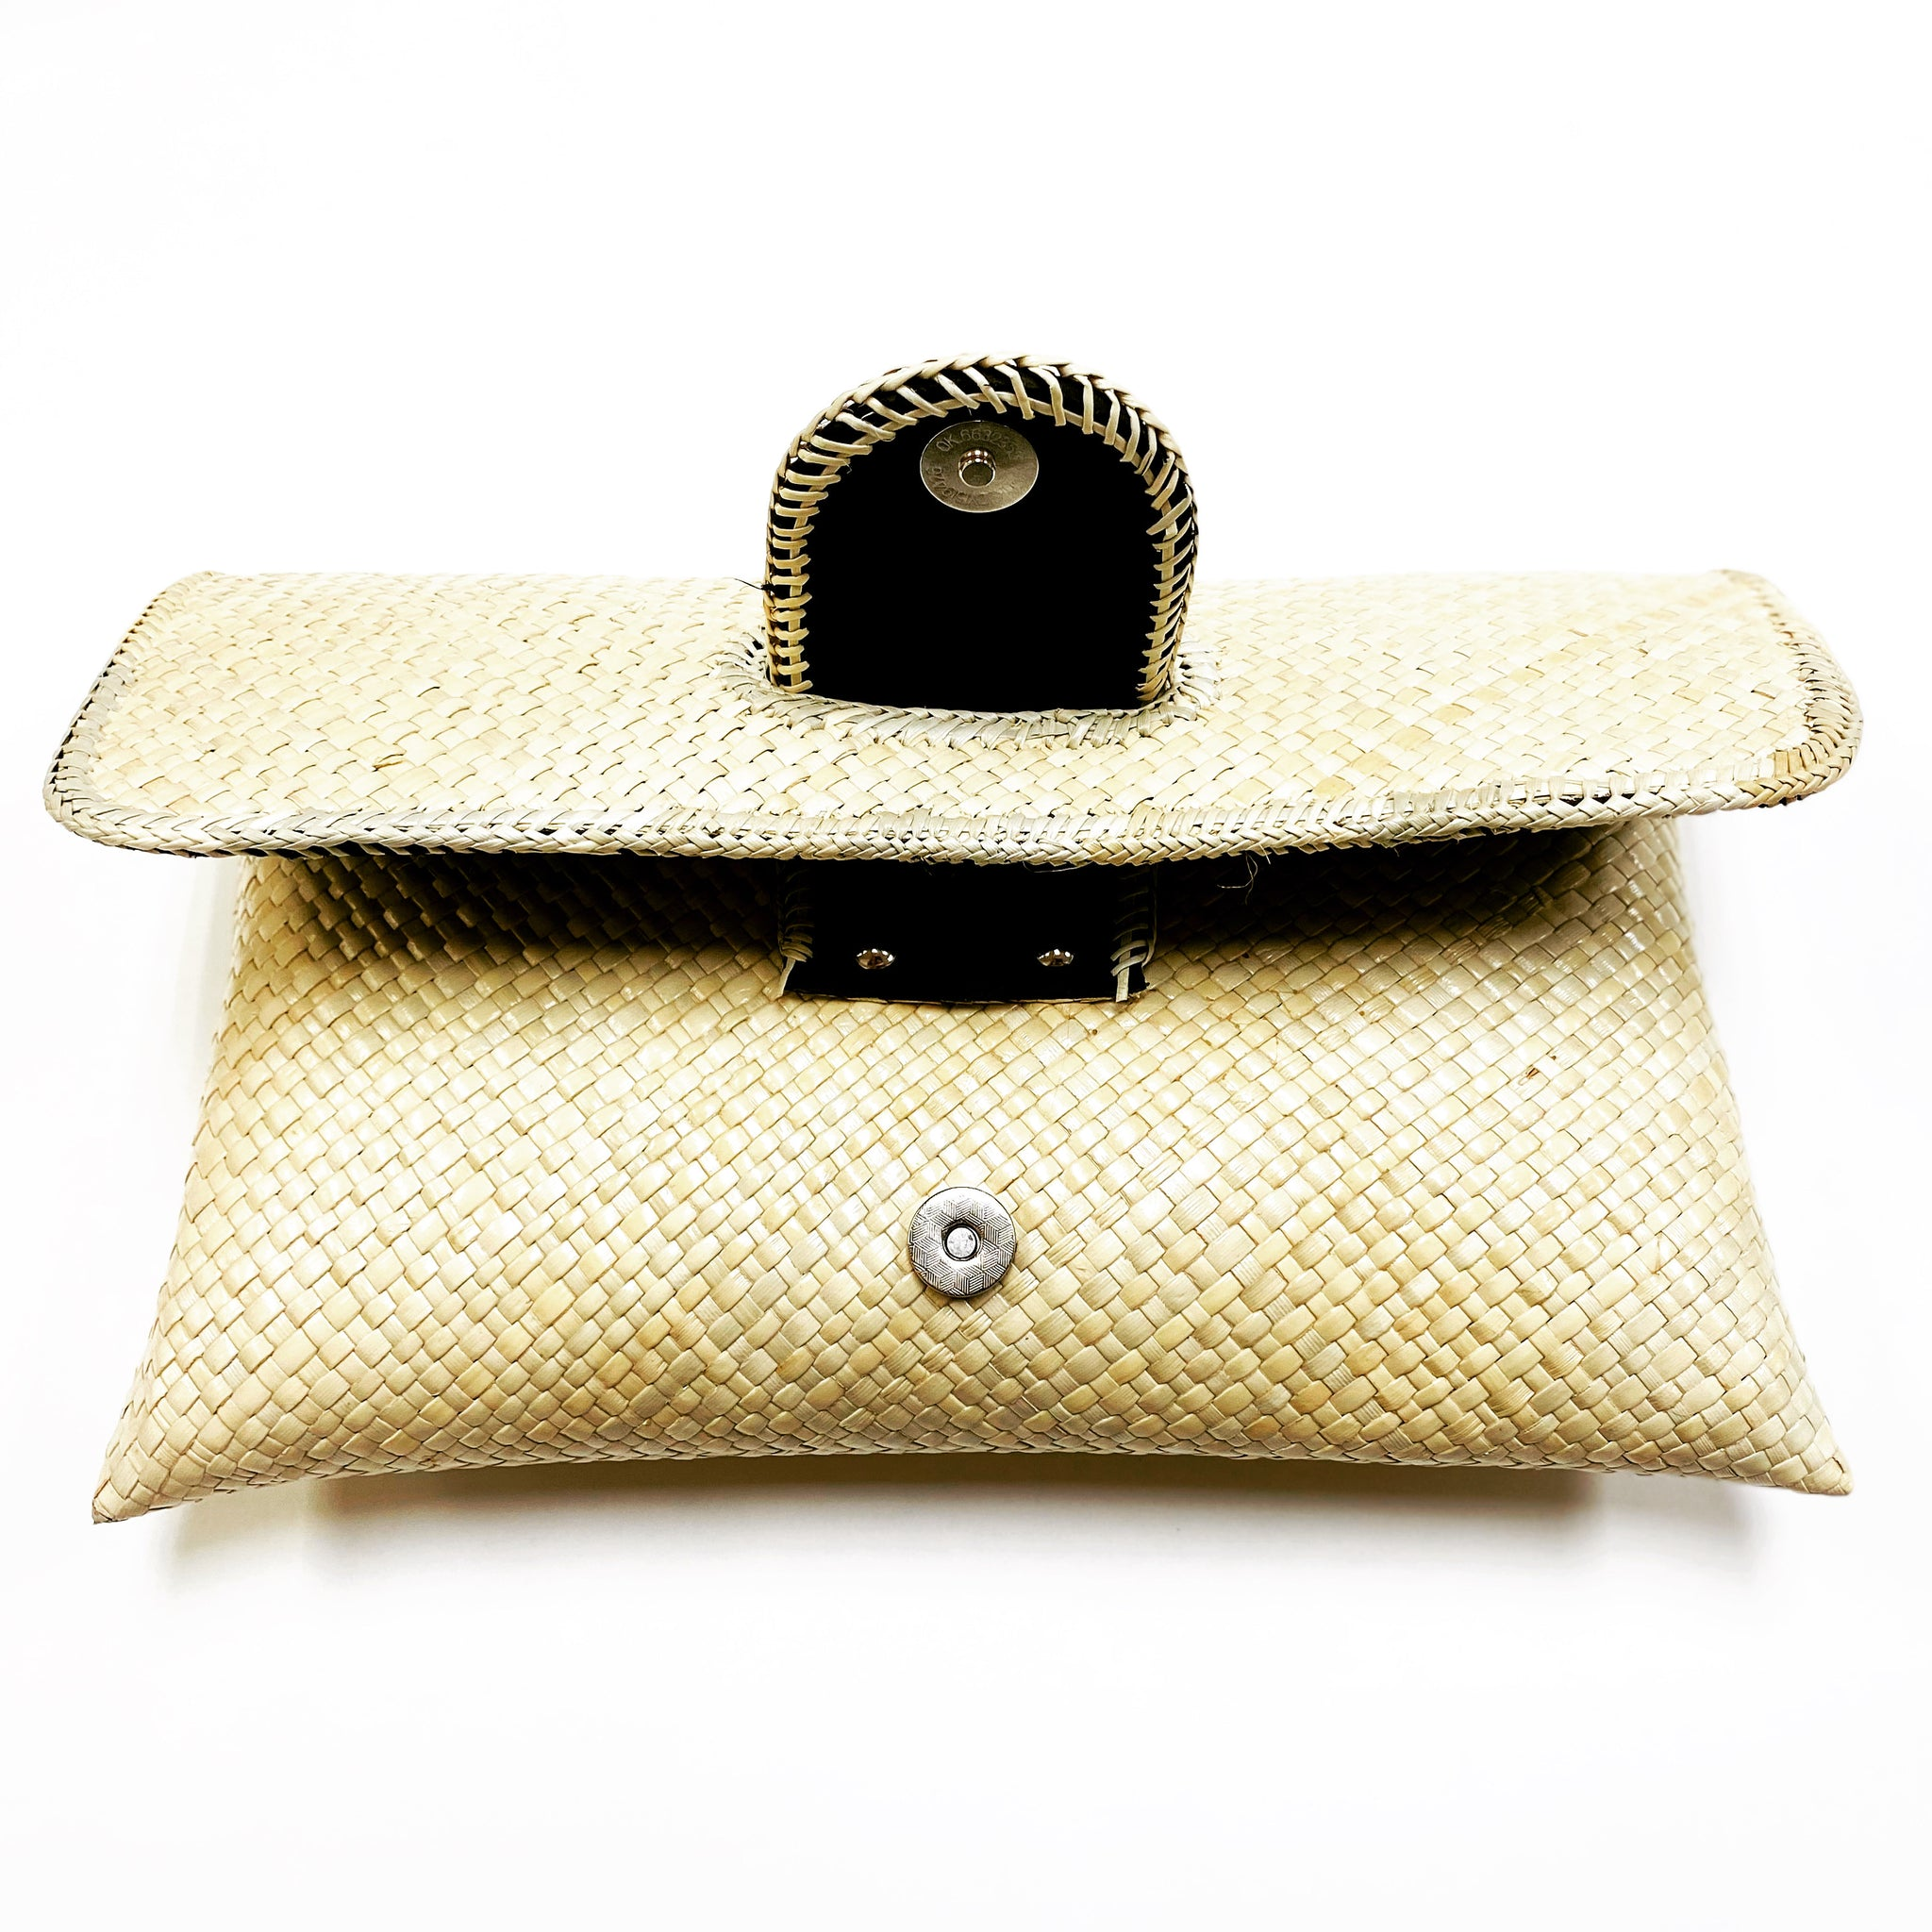 Lauhala Foldover clutch